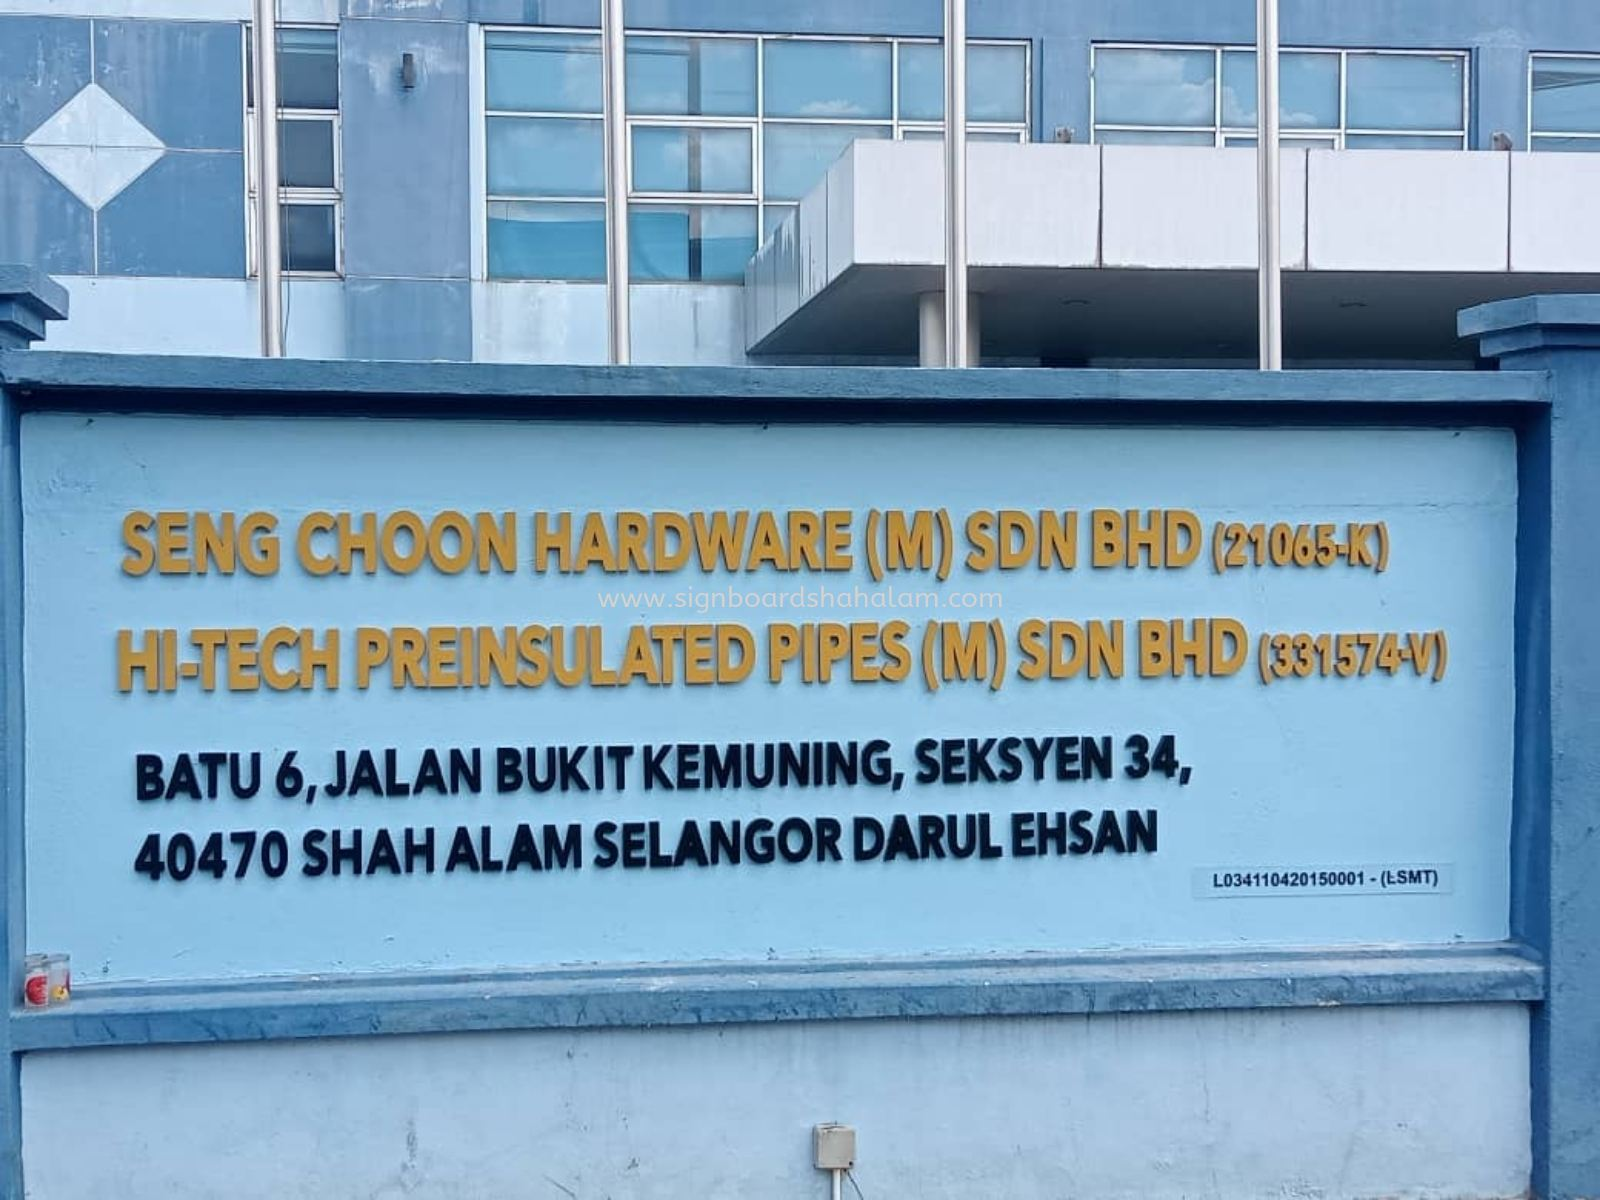 Seng Choon Hardware (M) Sdn Bhd Shah Alam -3D Box Up Lettering Signage with Non LED